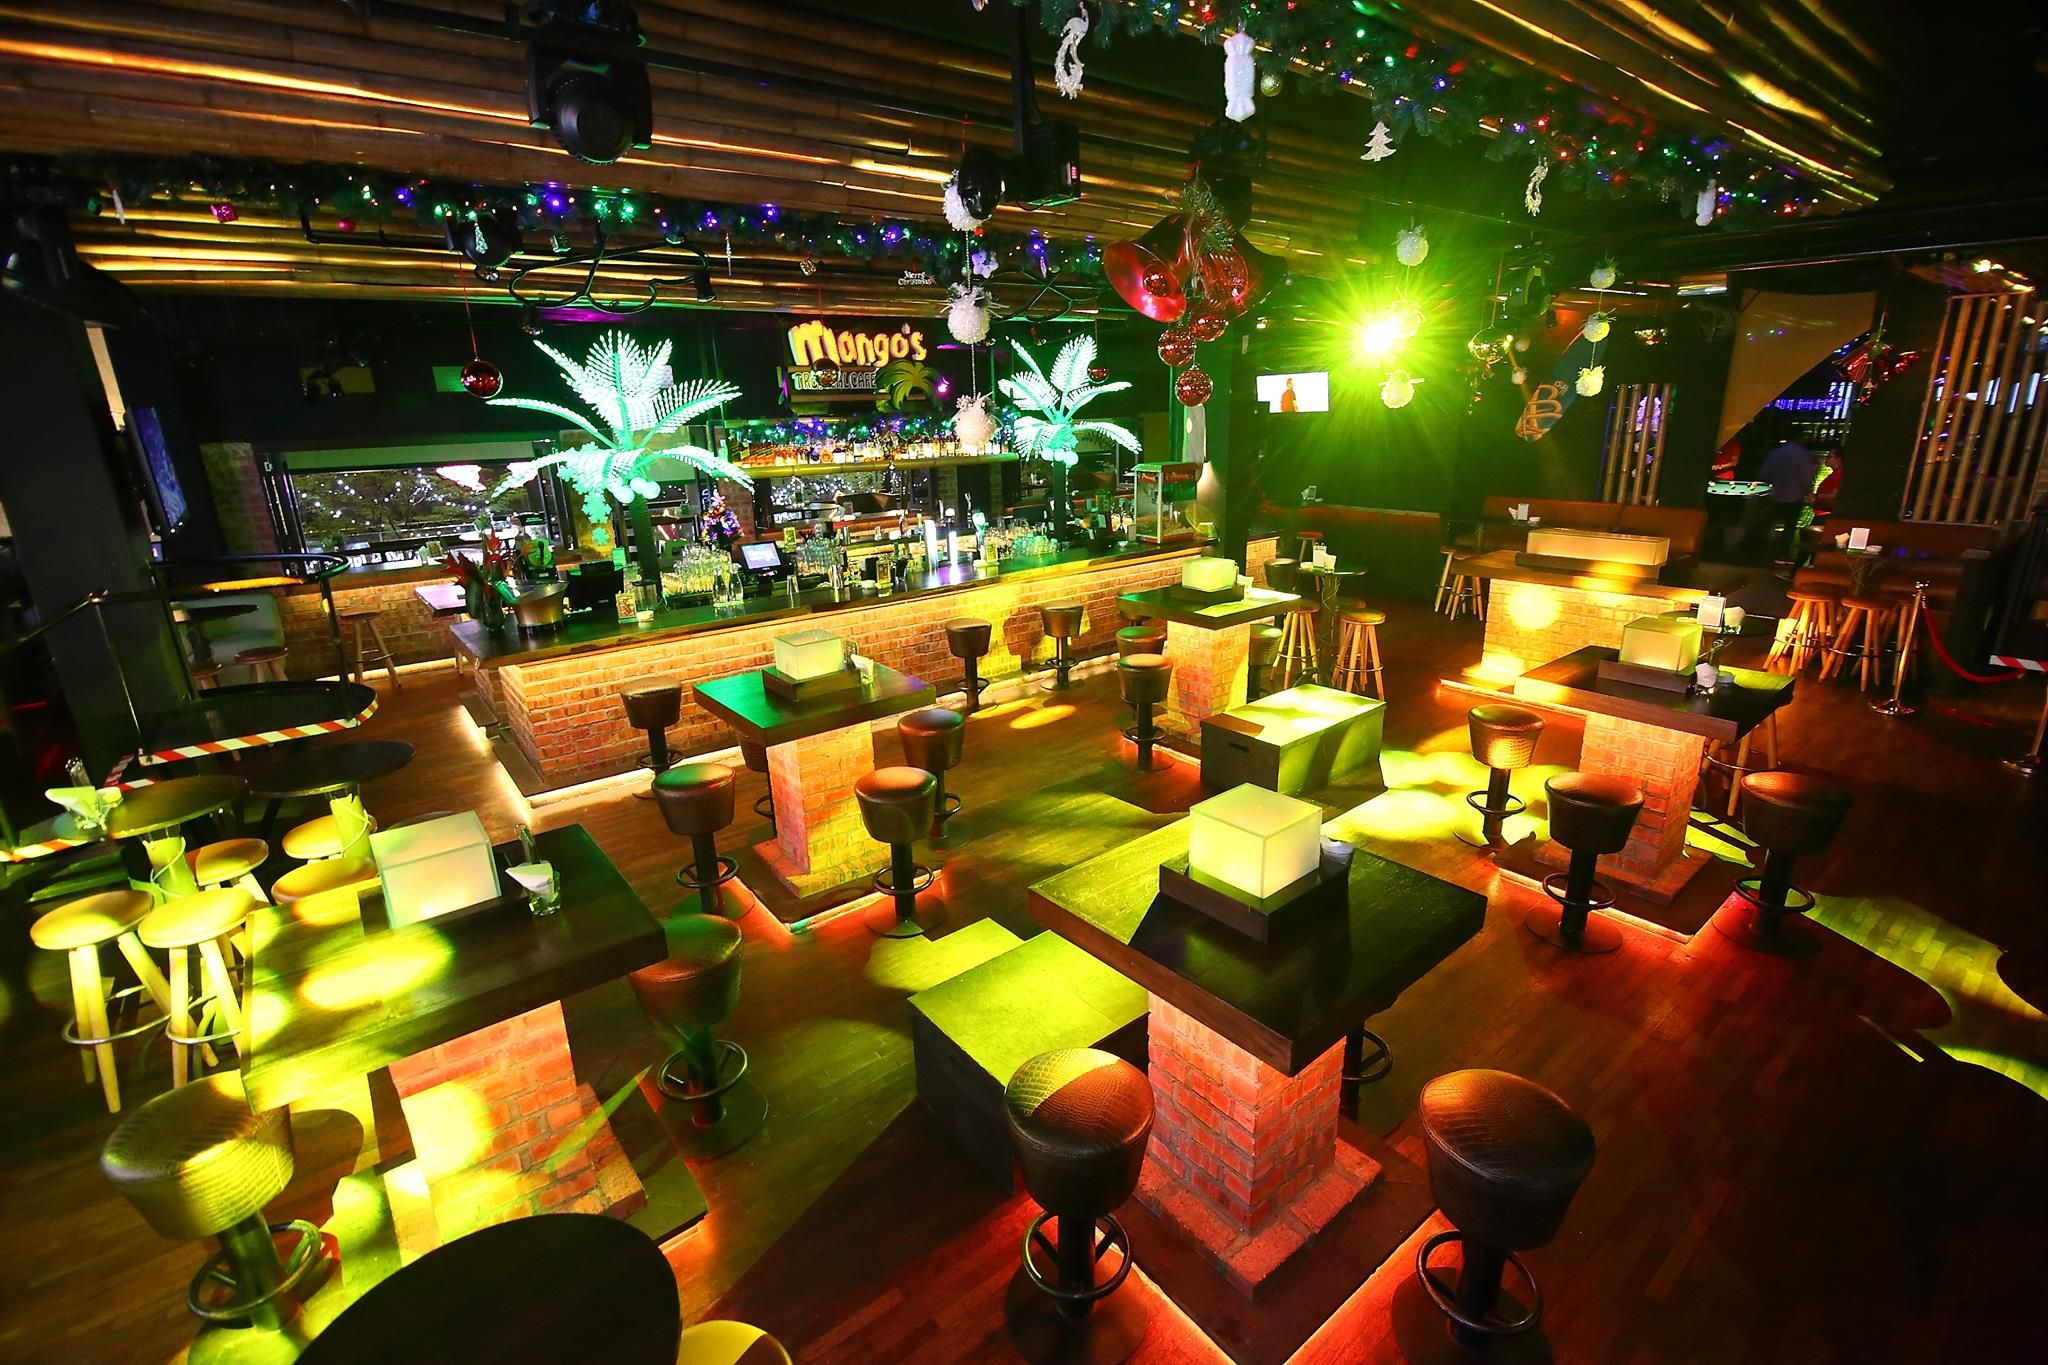 Mango S Tropical Cafe Trec Discover The Best Nightlife